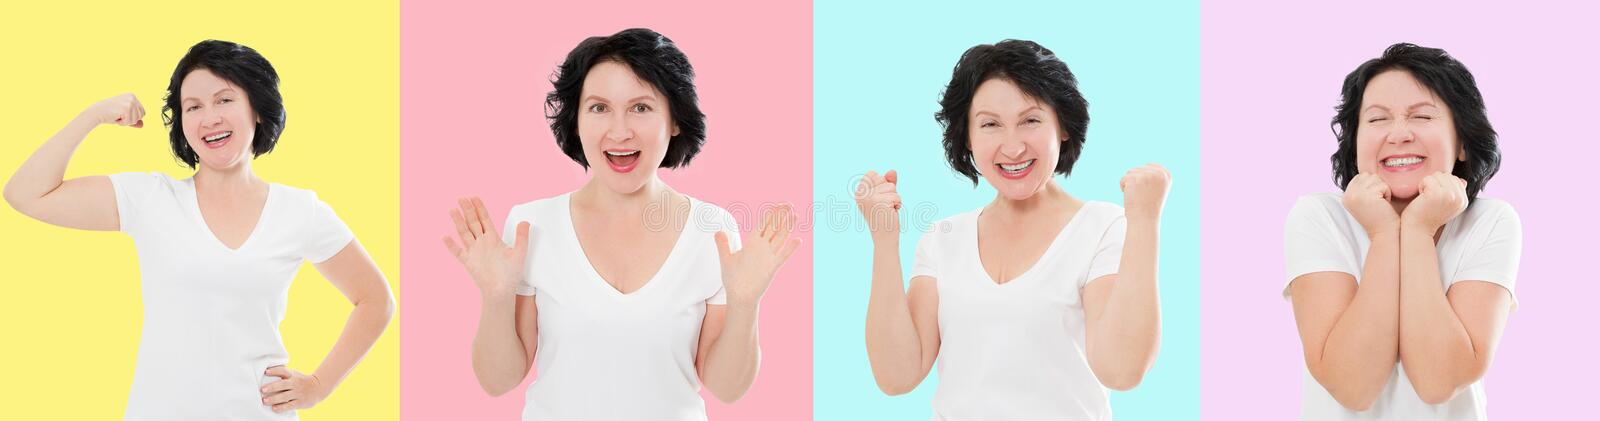 Set of surprised shocked excited asian woman face isolated on colorful background. Middle age female in summer t shirt. Copy space royalty free stock image